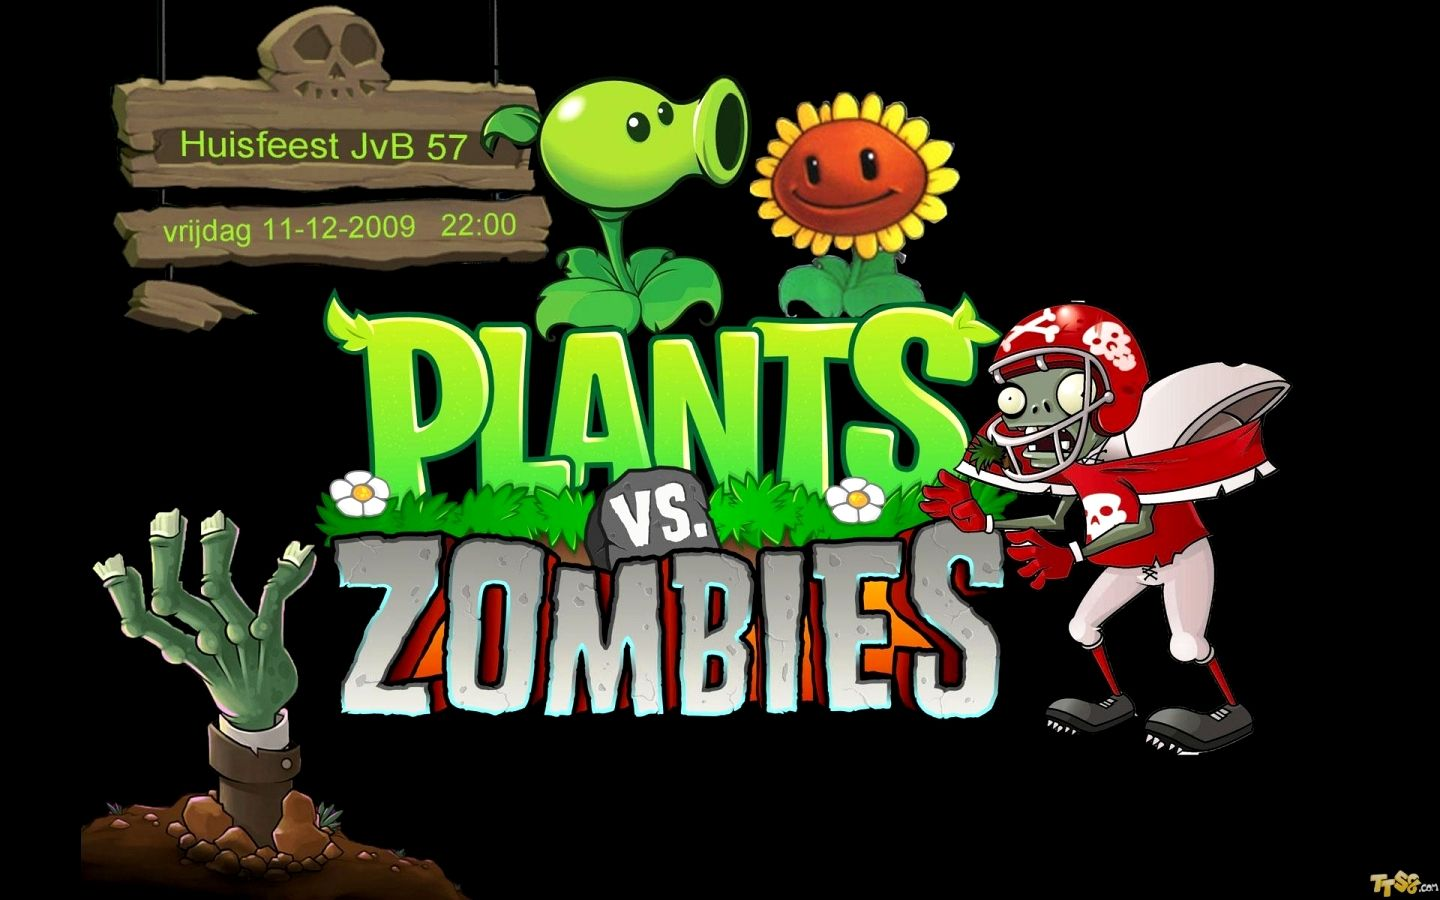 Pvz Garden Warfare Wallpaper 1920 1080 Plants Vs Zombies Wallpaper 41 Wallpapers Adorable Wallpap Plants Vs Zombis Plants Vs Zombies Plants Vs Zombies 2